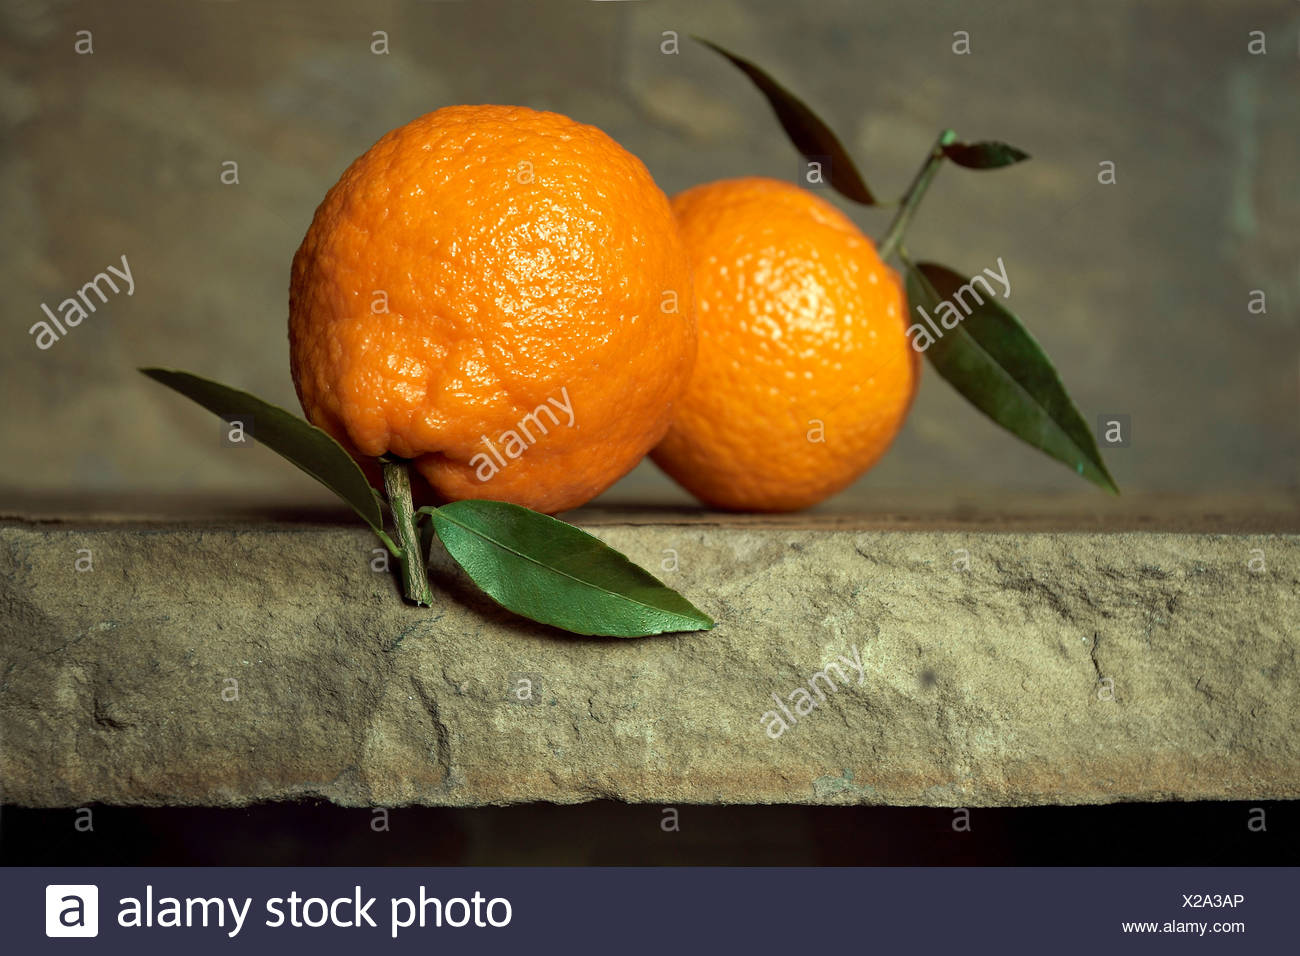 Two oranges with leaves on stone background - Stock Image